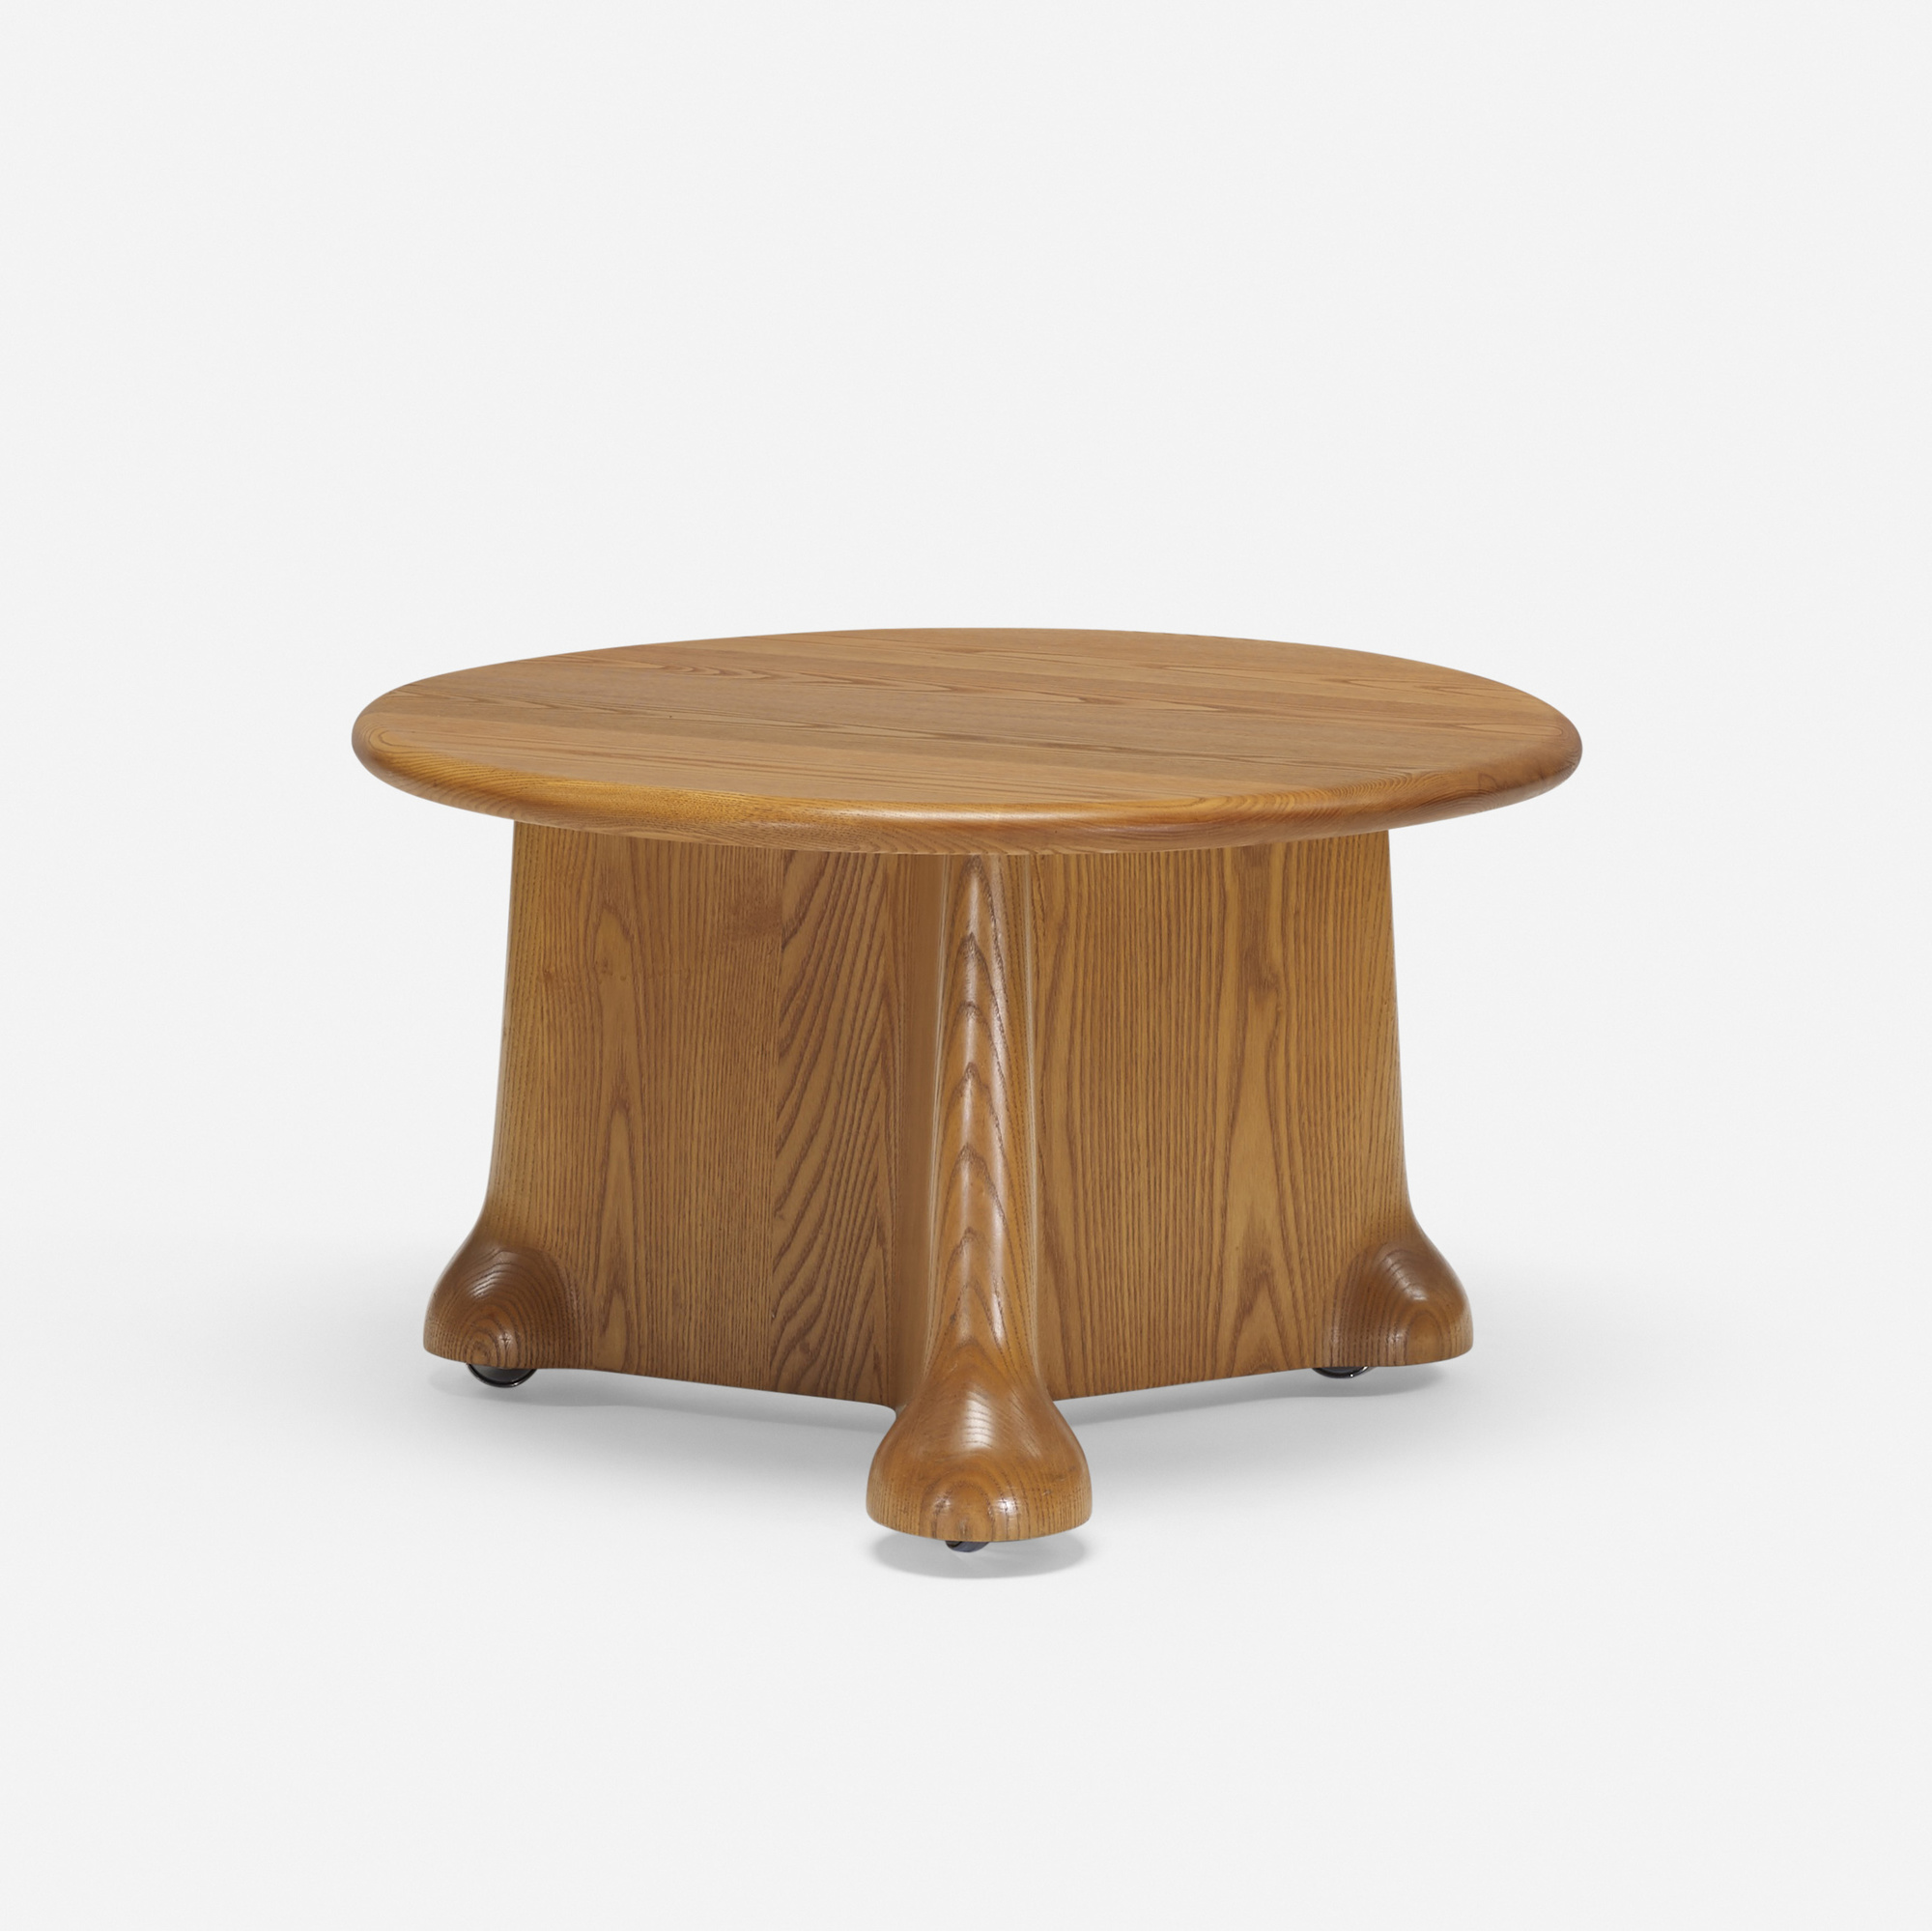 284 WENDELL CASTLE Quinn coffee table Design 22 October 2015